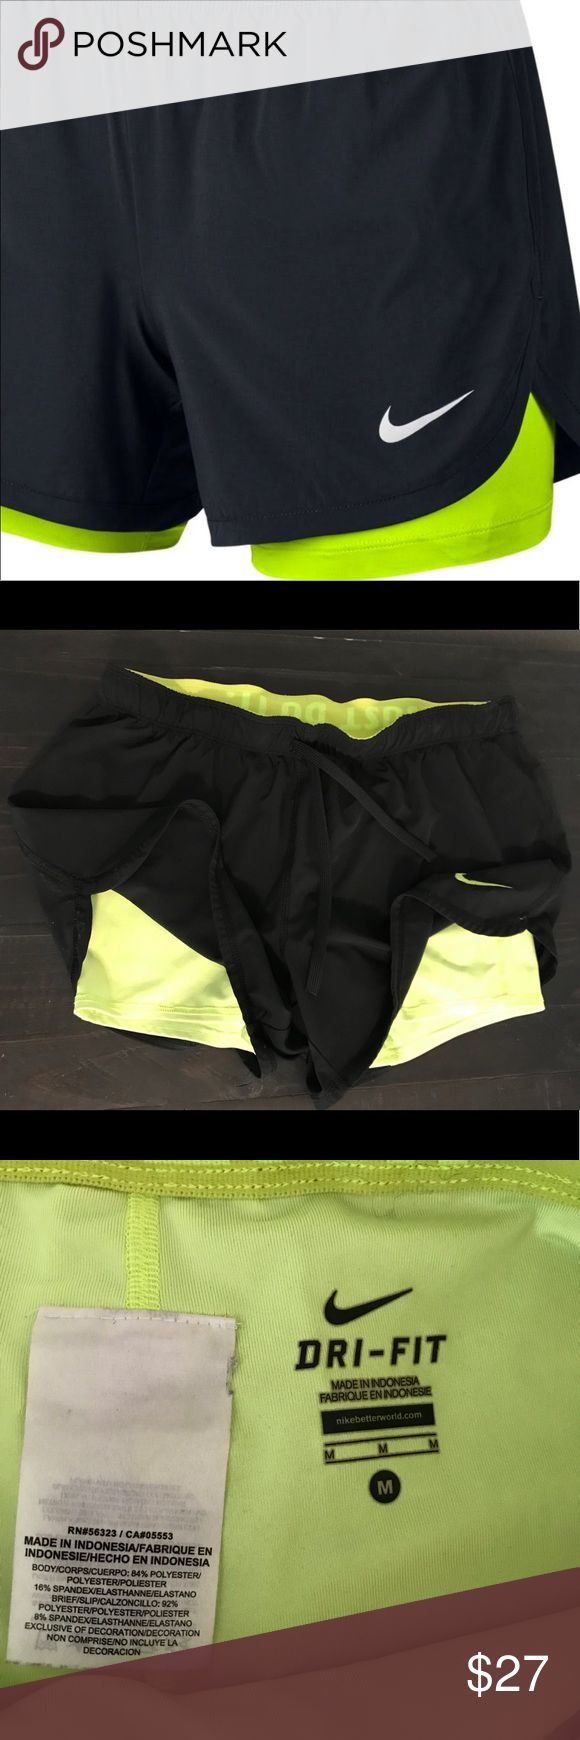 Nike Dri Fit 2 in 1 shorts Black loose shorts with elastic neon green shorts underneath. Very comfy only worn a few times. Perfect condition. Nike Shorts